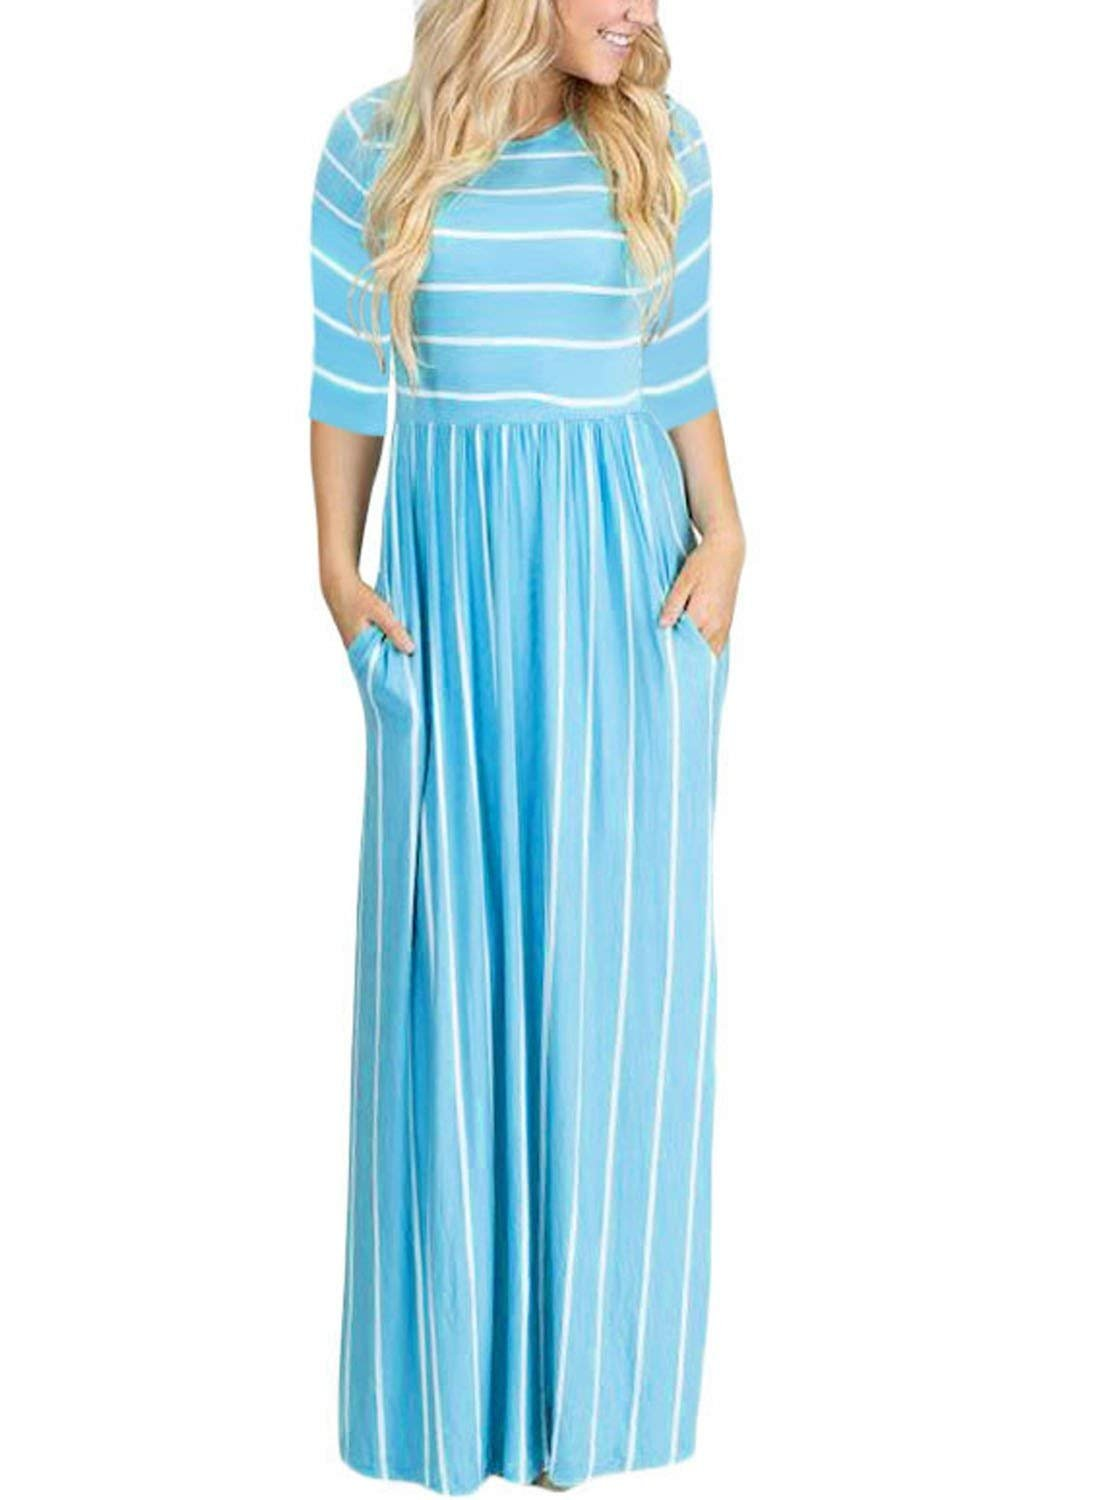 HOTAPEI Women`s Summer Casual Loose Striped Long Dress Short Sleeve Pocket Maxi Dress (並行輸入品) B07FD476ZJ Small|Z-3/4 Sleeve-light Blue Z-3/4 Sleeve-light Blue Small